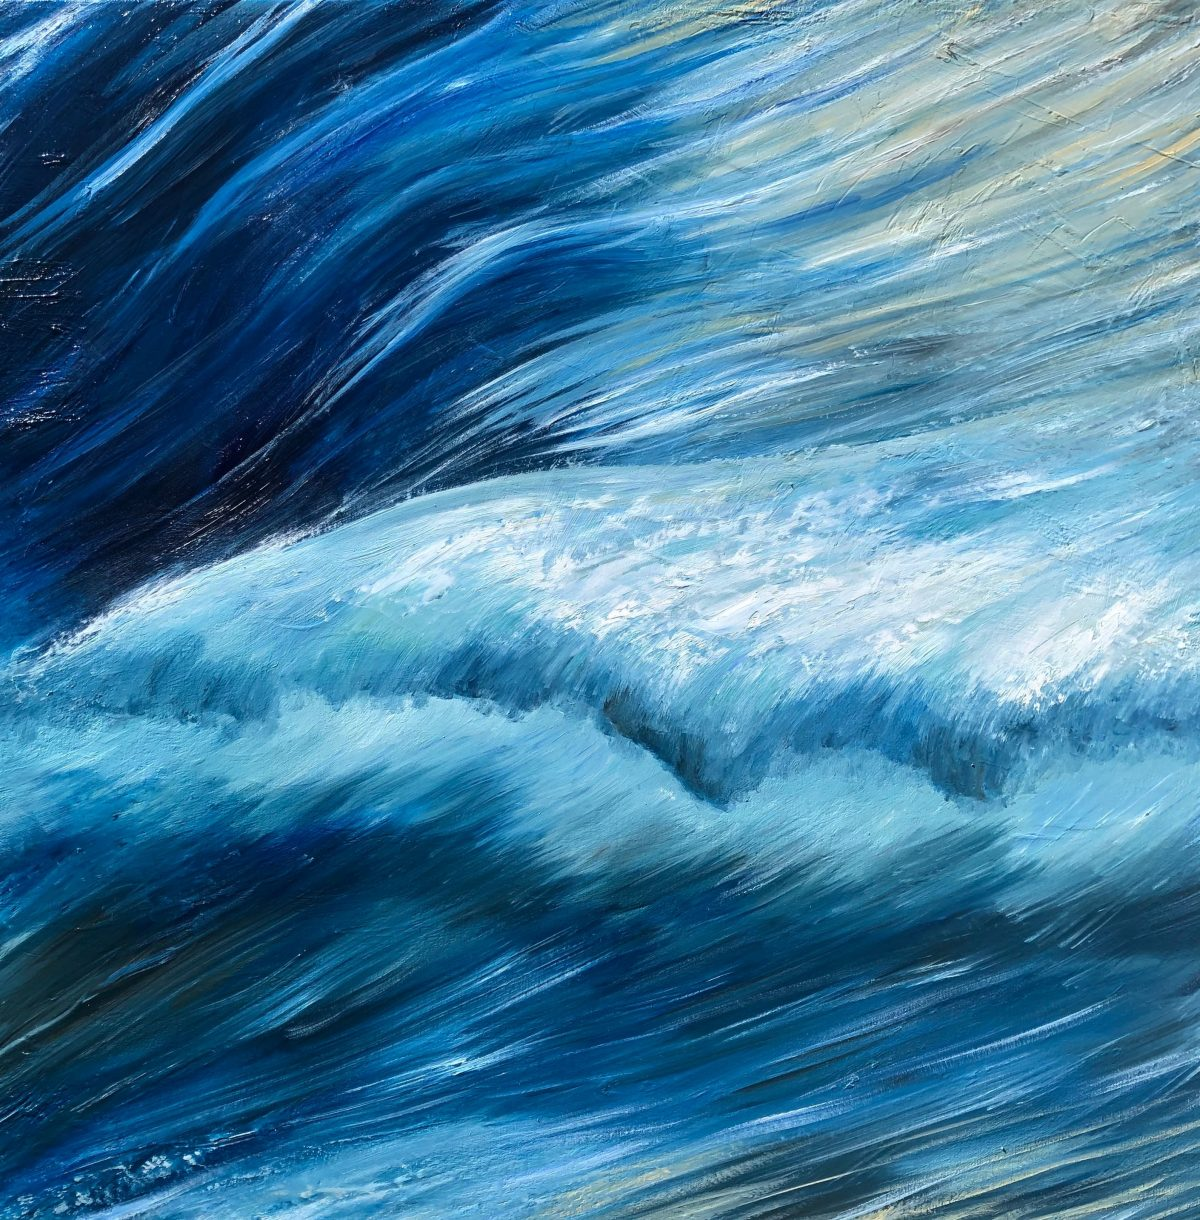 Oil painting of into the blue ocean waves